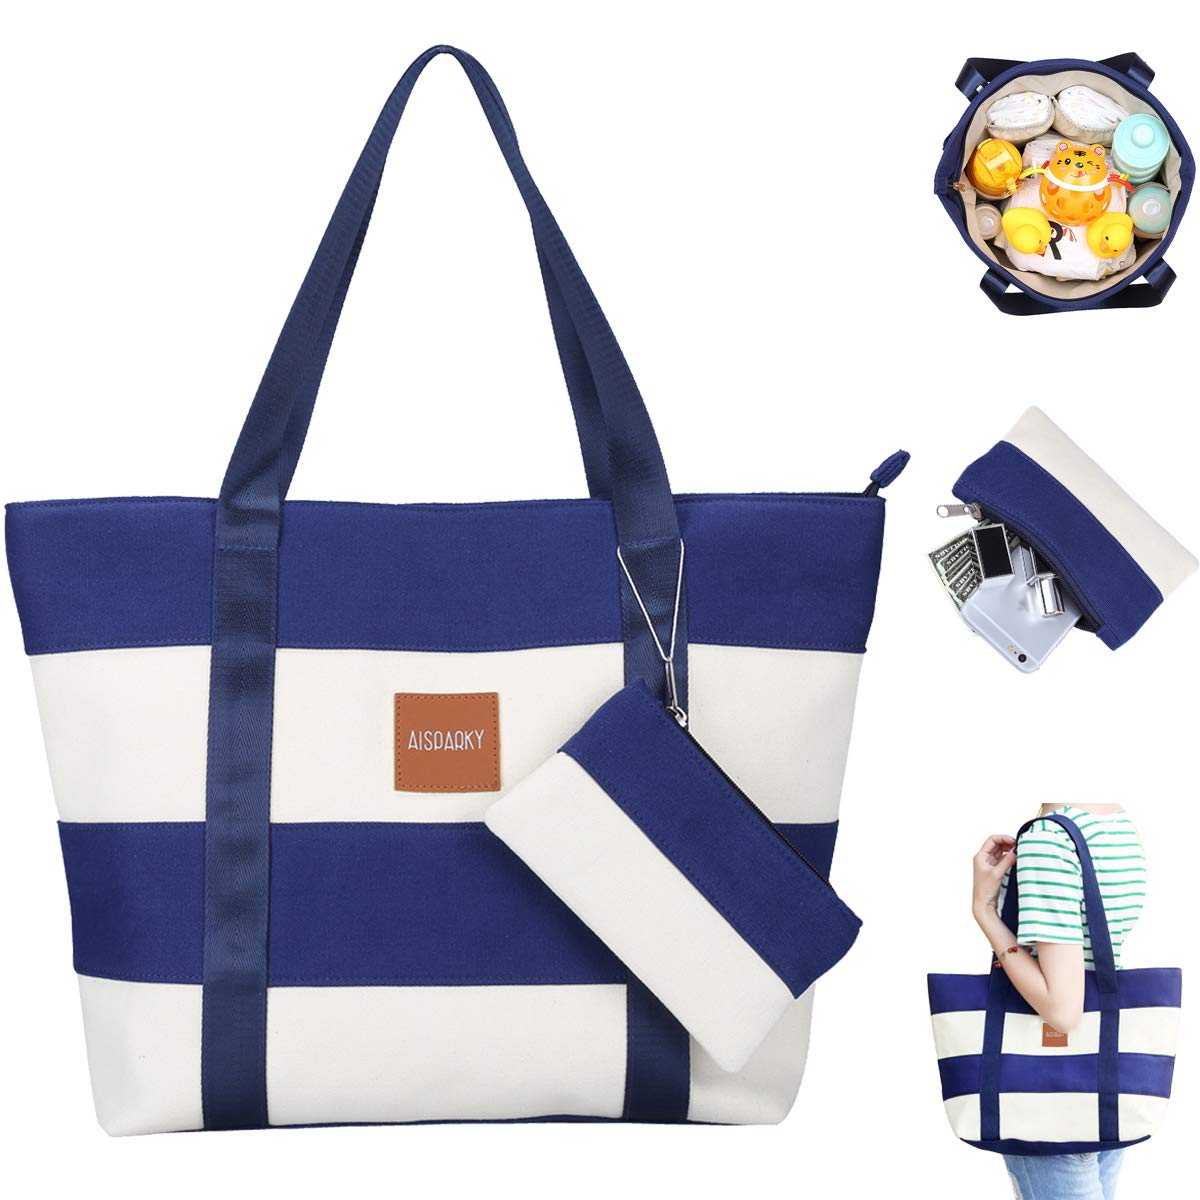 AISPARKY Baby Diaper Bag Tote, Stylish Canvas Baby Bag for Mom and Dad with Purse and Insulated Pockets Blue Beijing Screendata Co .LTD JPCDB01